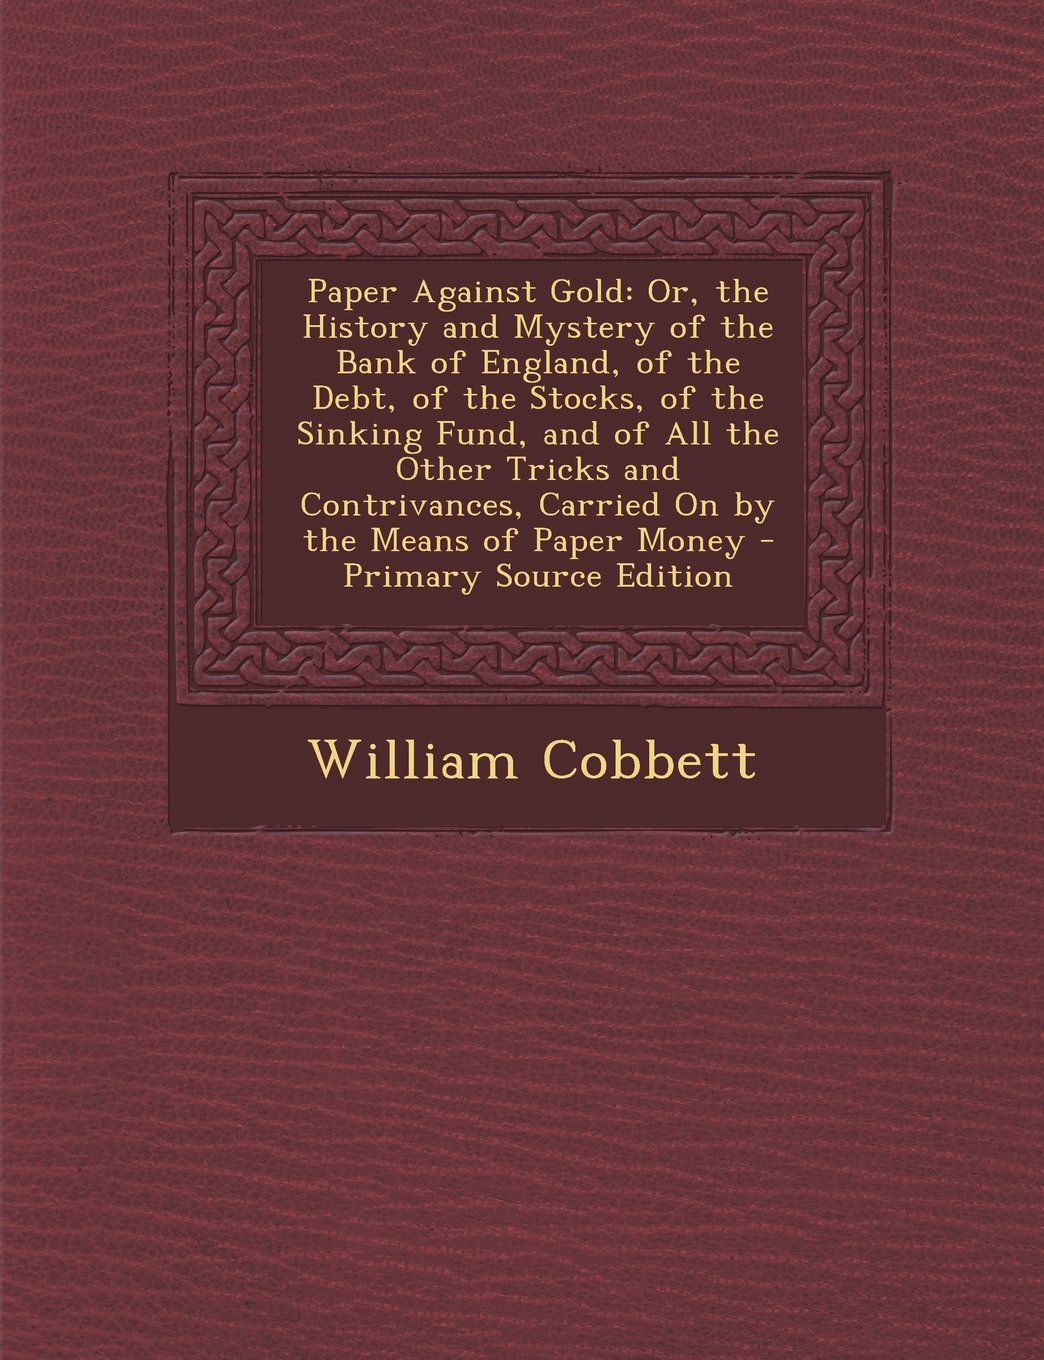 Download Paper Against Gold: Or, the History and Mystery of the Bank of England, of the Debt, of the Stocks, of the Sinking Fund, and of All the OT pdf